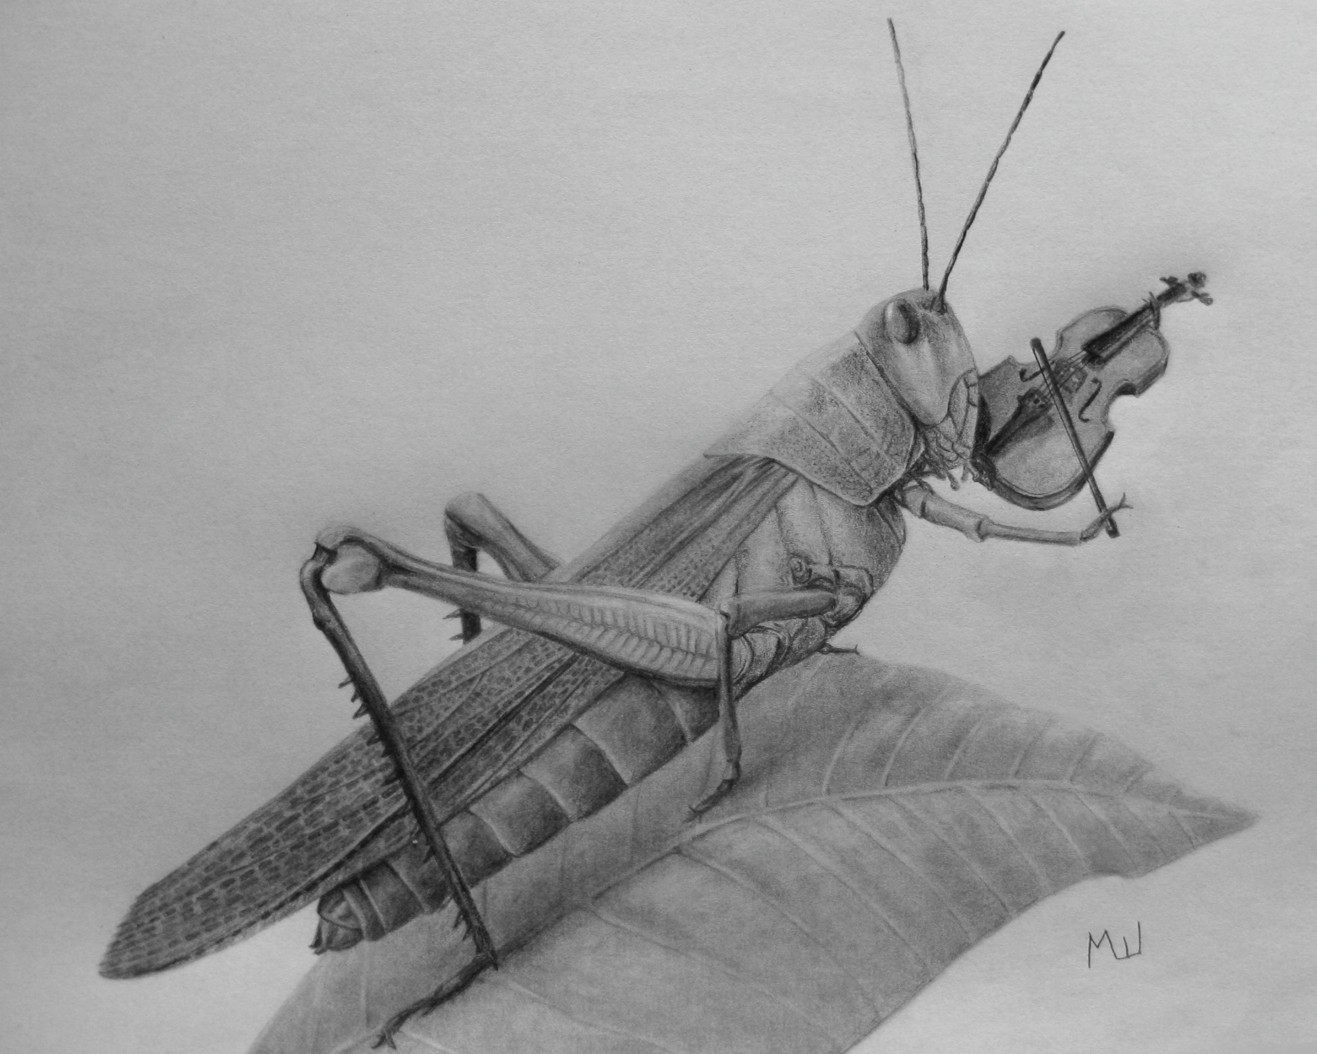 Drawn violin pencil sketch Violin Playing of 00049 Grasshopper